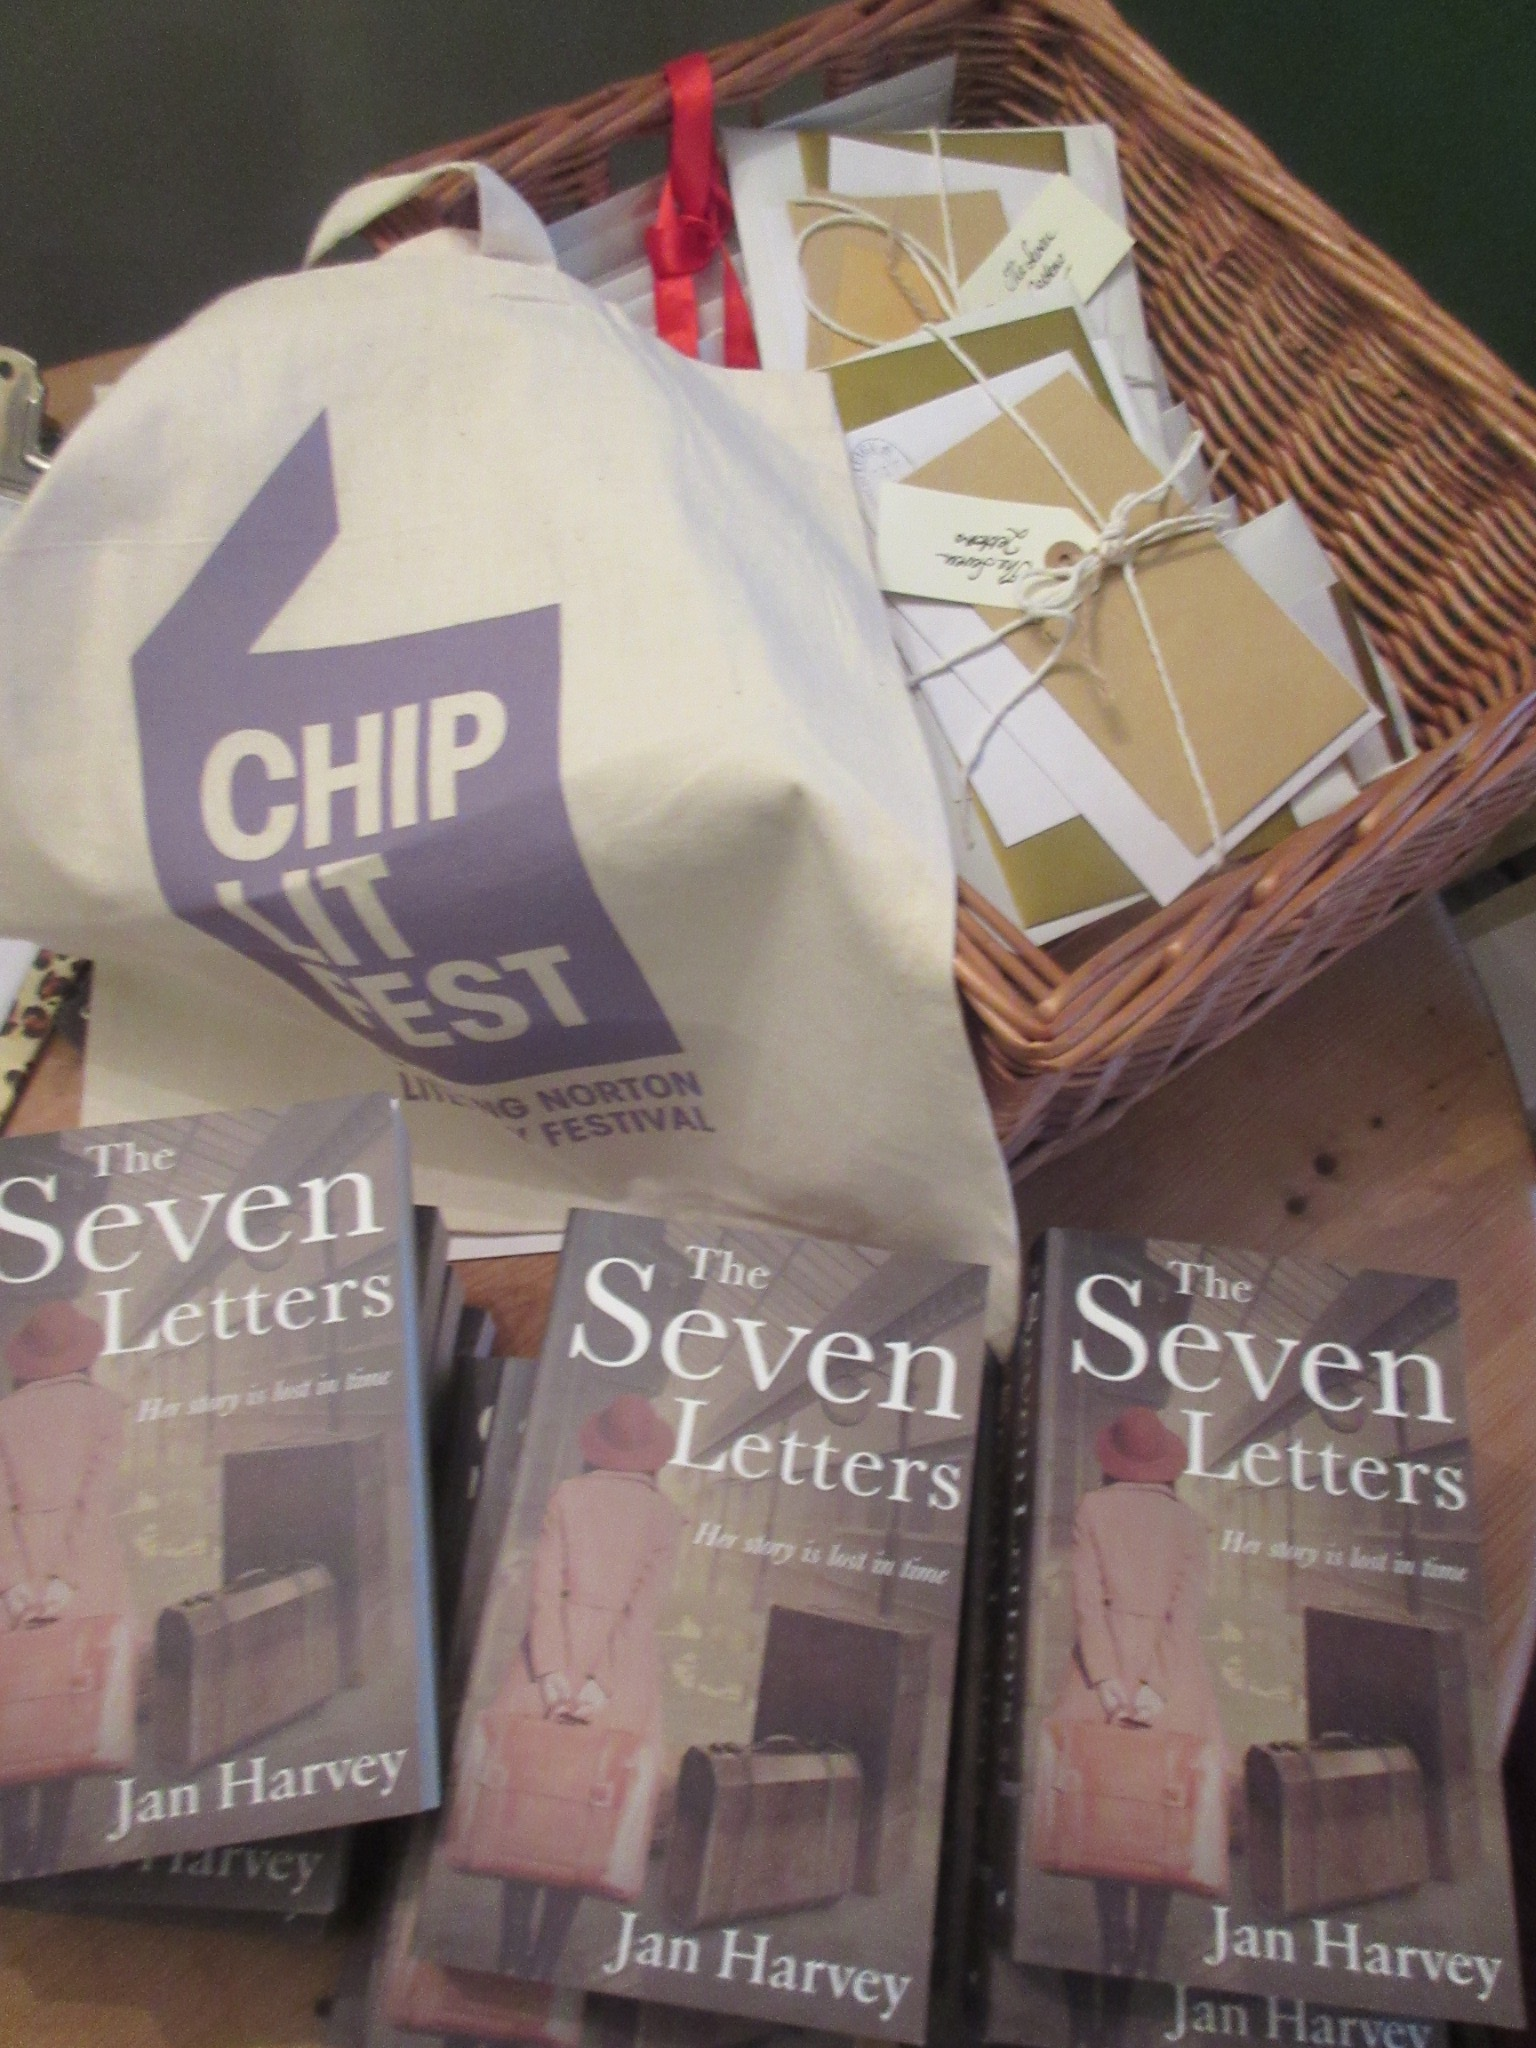 ChipLitFest Bag with The Seven Letters